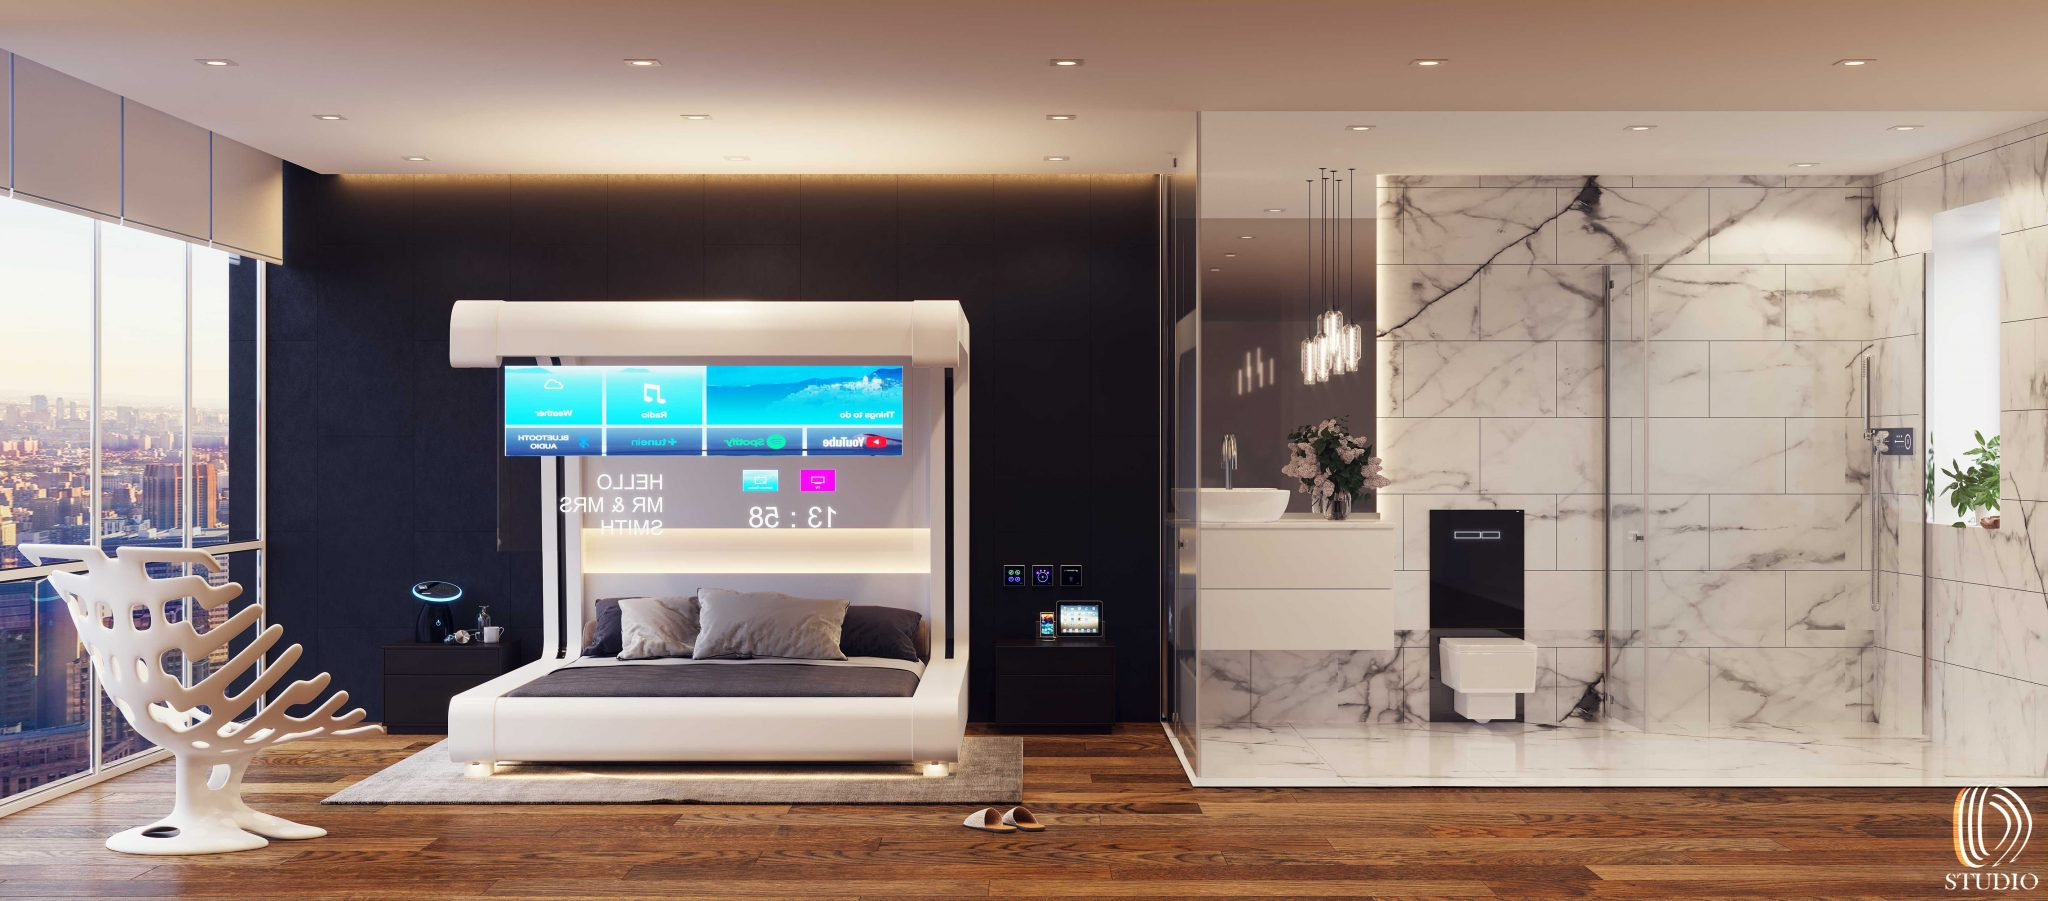 856-01-Futuristic-Mockup-of-a-Hotel-Room